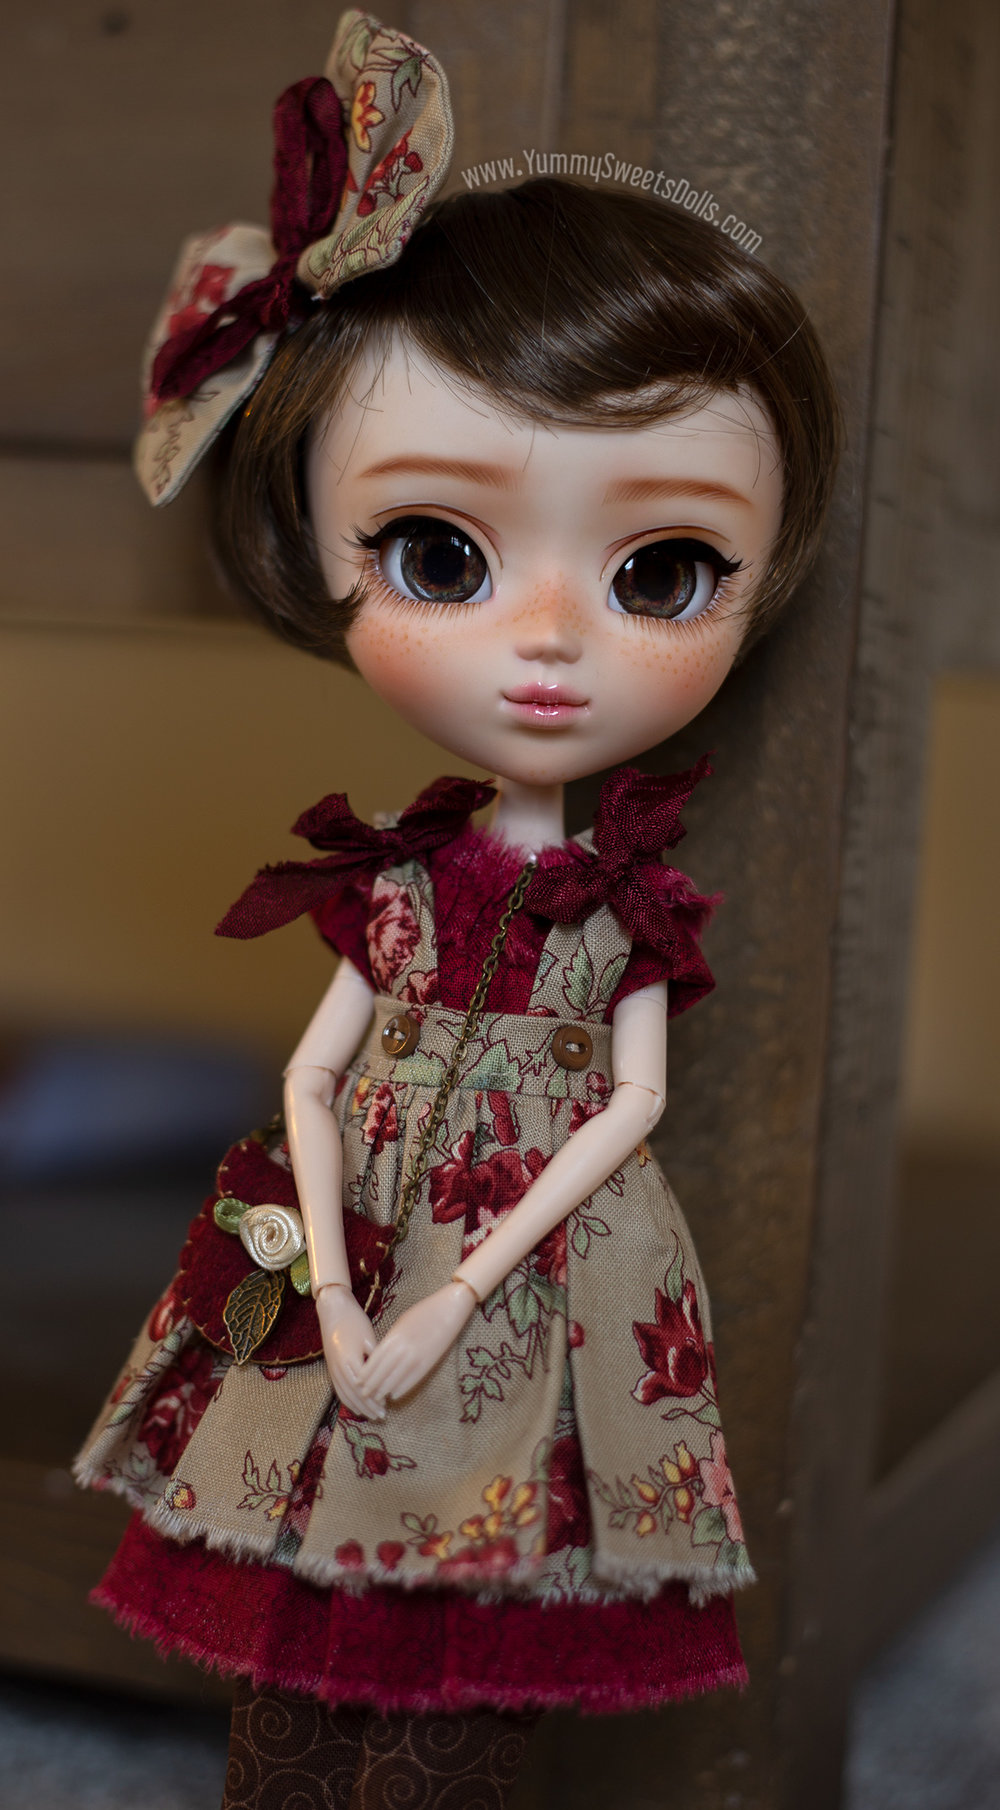 Fall 2018 Nature Girls Autumn Rose, full custom Pullip doll by Yummy Sweets Dolls, Connie Bees for charity